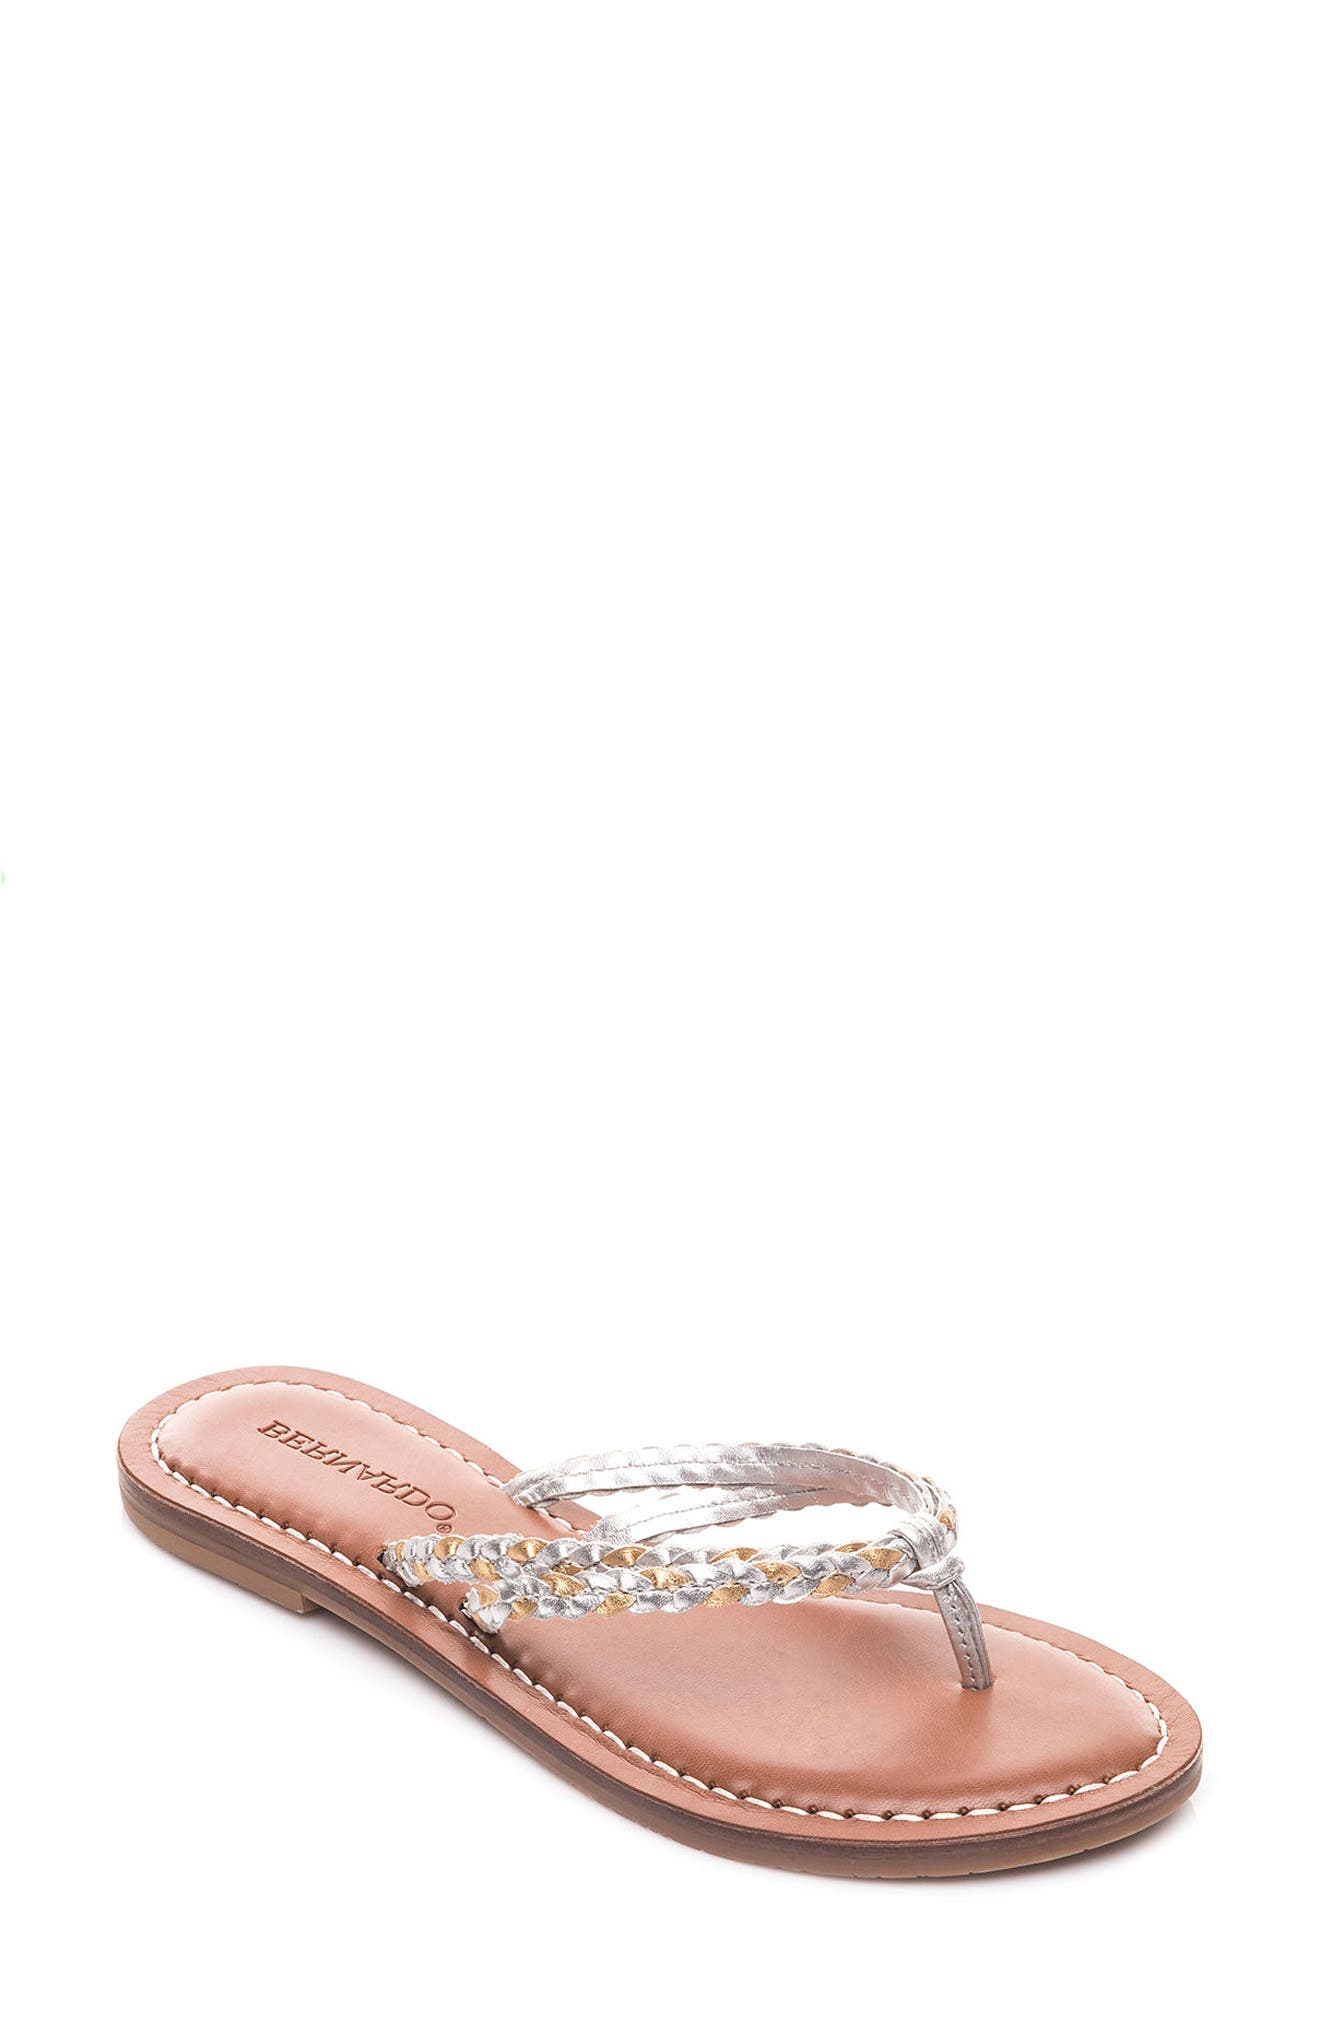 Bernardo Greta Braided Strap Sandal,                             Main thumbnail 2, color,